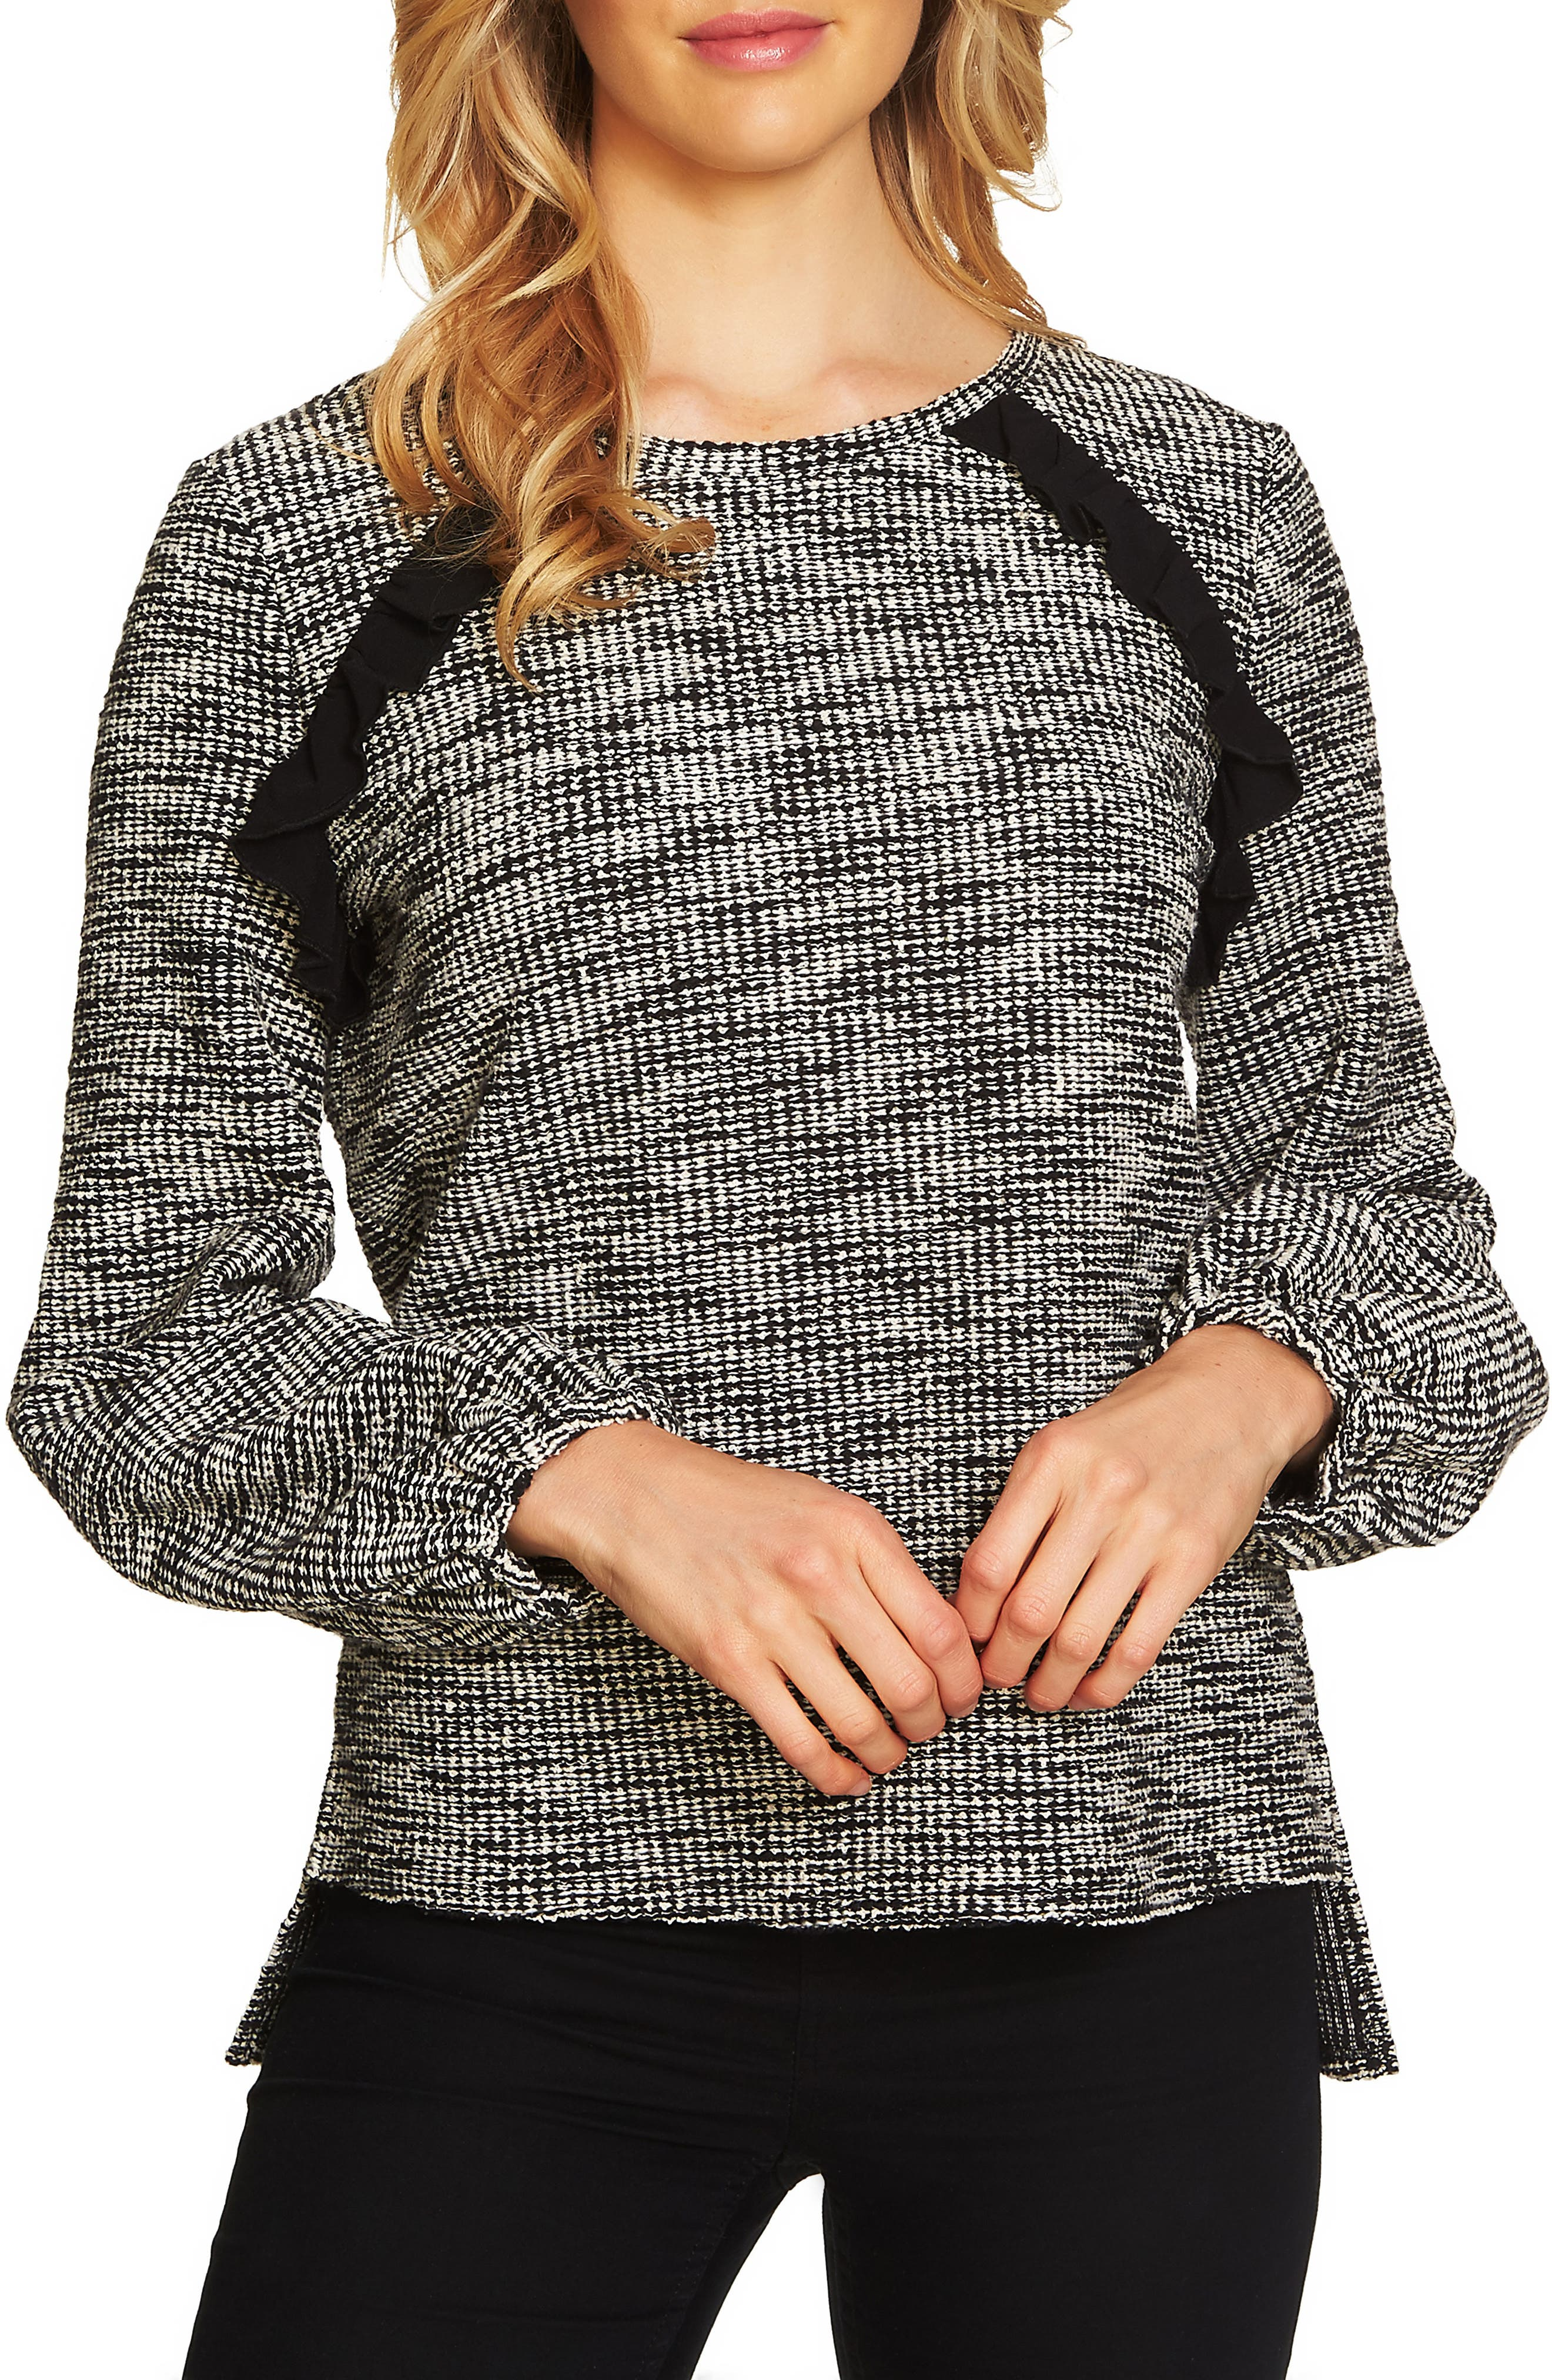 Main Image - CeCe Tweedy Knit Top